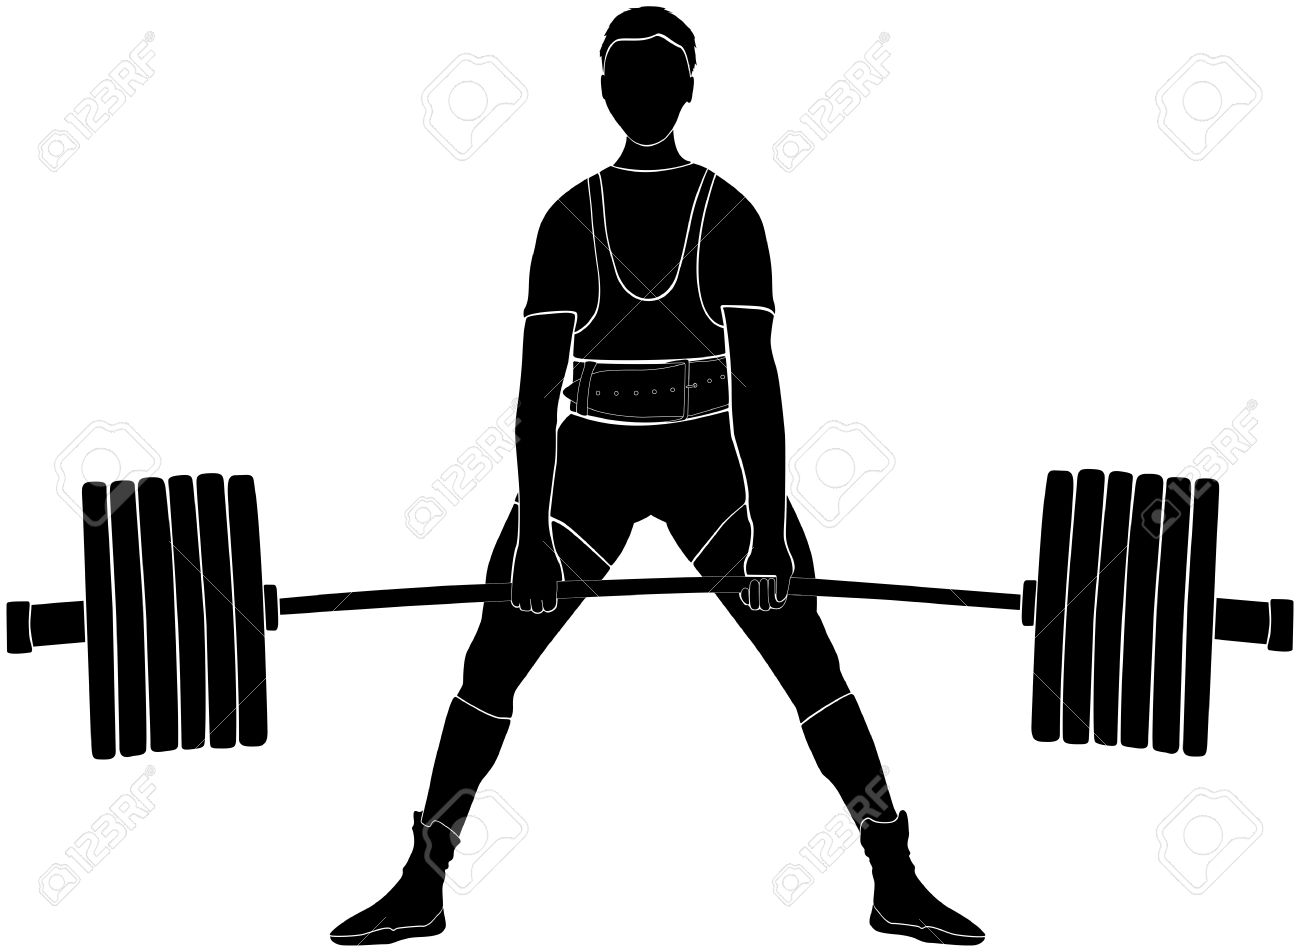 Male athlete powerlifter deadlift in powerlifting black silhouette male athlete powerlifter deadlift in powerlifting black silhouette stock vector 72975193 falaconquin